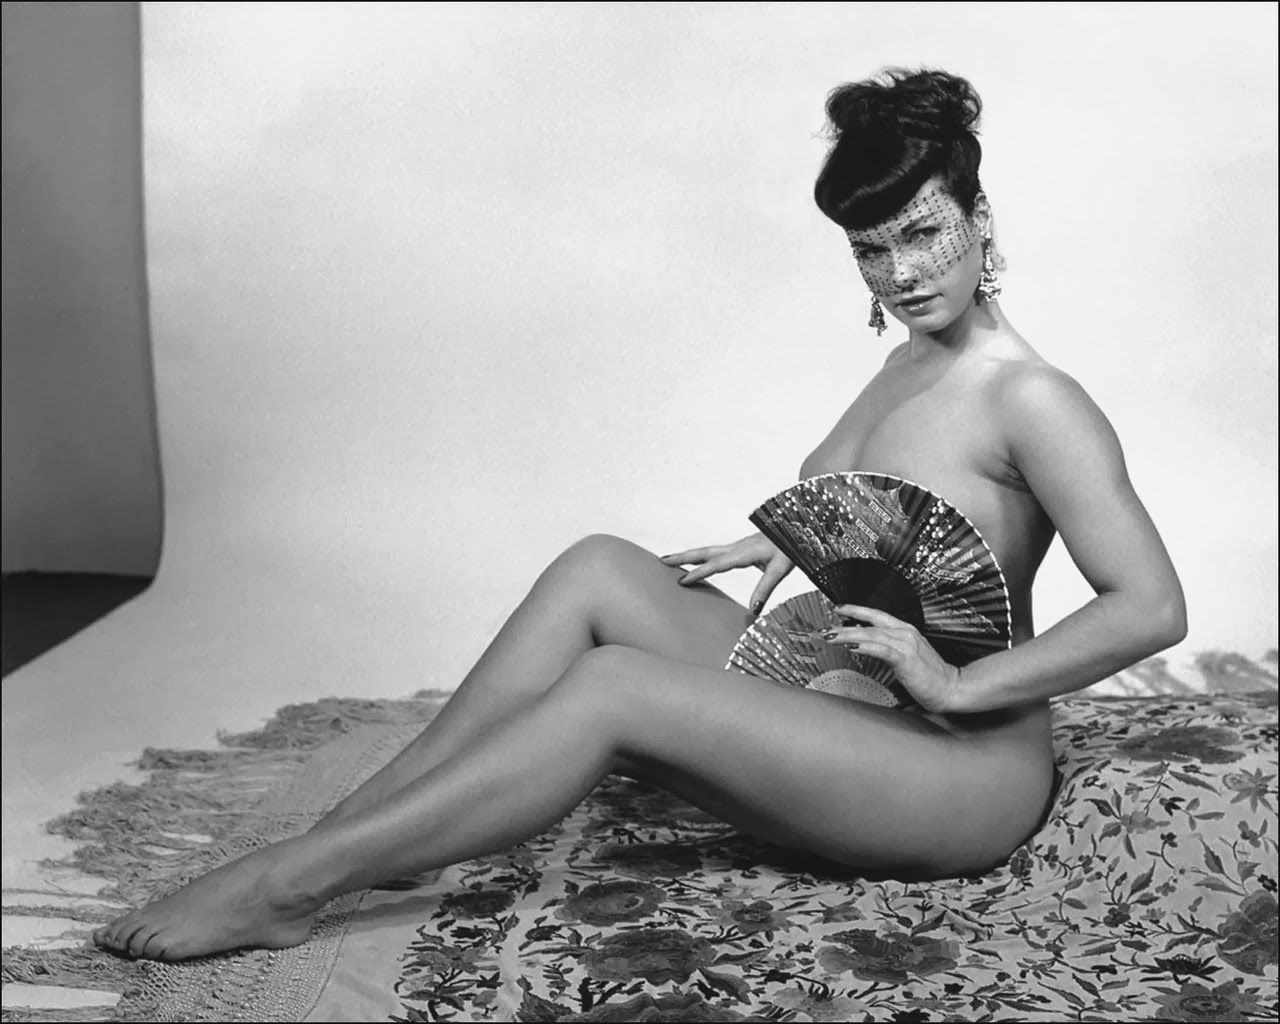 bettie page hairstylebettie page reveals all, bettie page clothing, bettie page store, bettie page shoes, bettie page film, bettie page hairstyle, bettie page gif, bettie page art, bettie page quotes, bettie page weight and height, bettie page last interview, bettie page legs, bettie page instagram, bettie page dance, bettie page online, bettie page old photos, bettie page private, bettie page 2008, bettie page vk, bettie page pin up queen